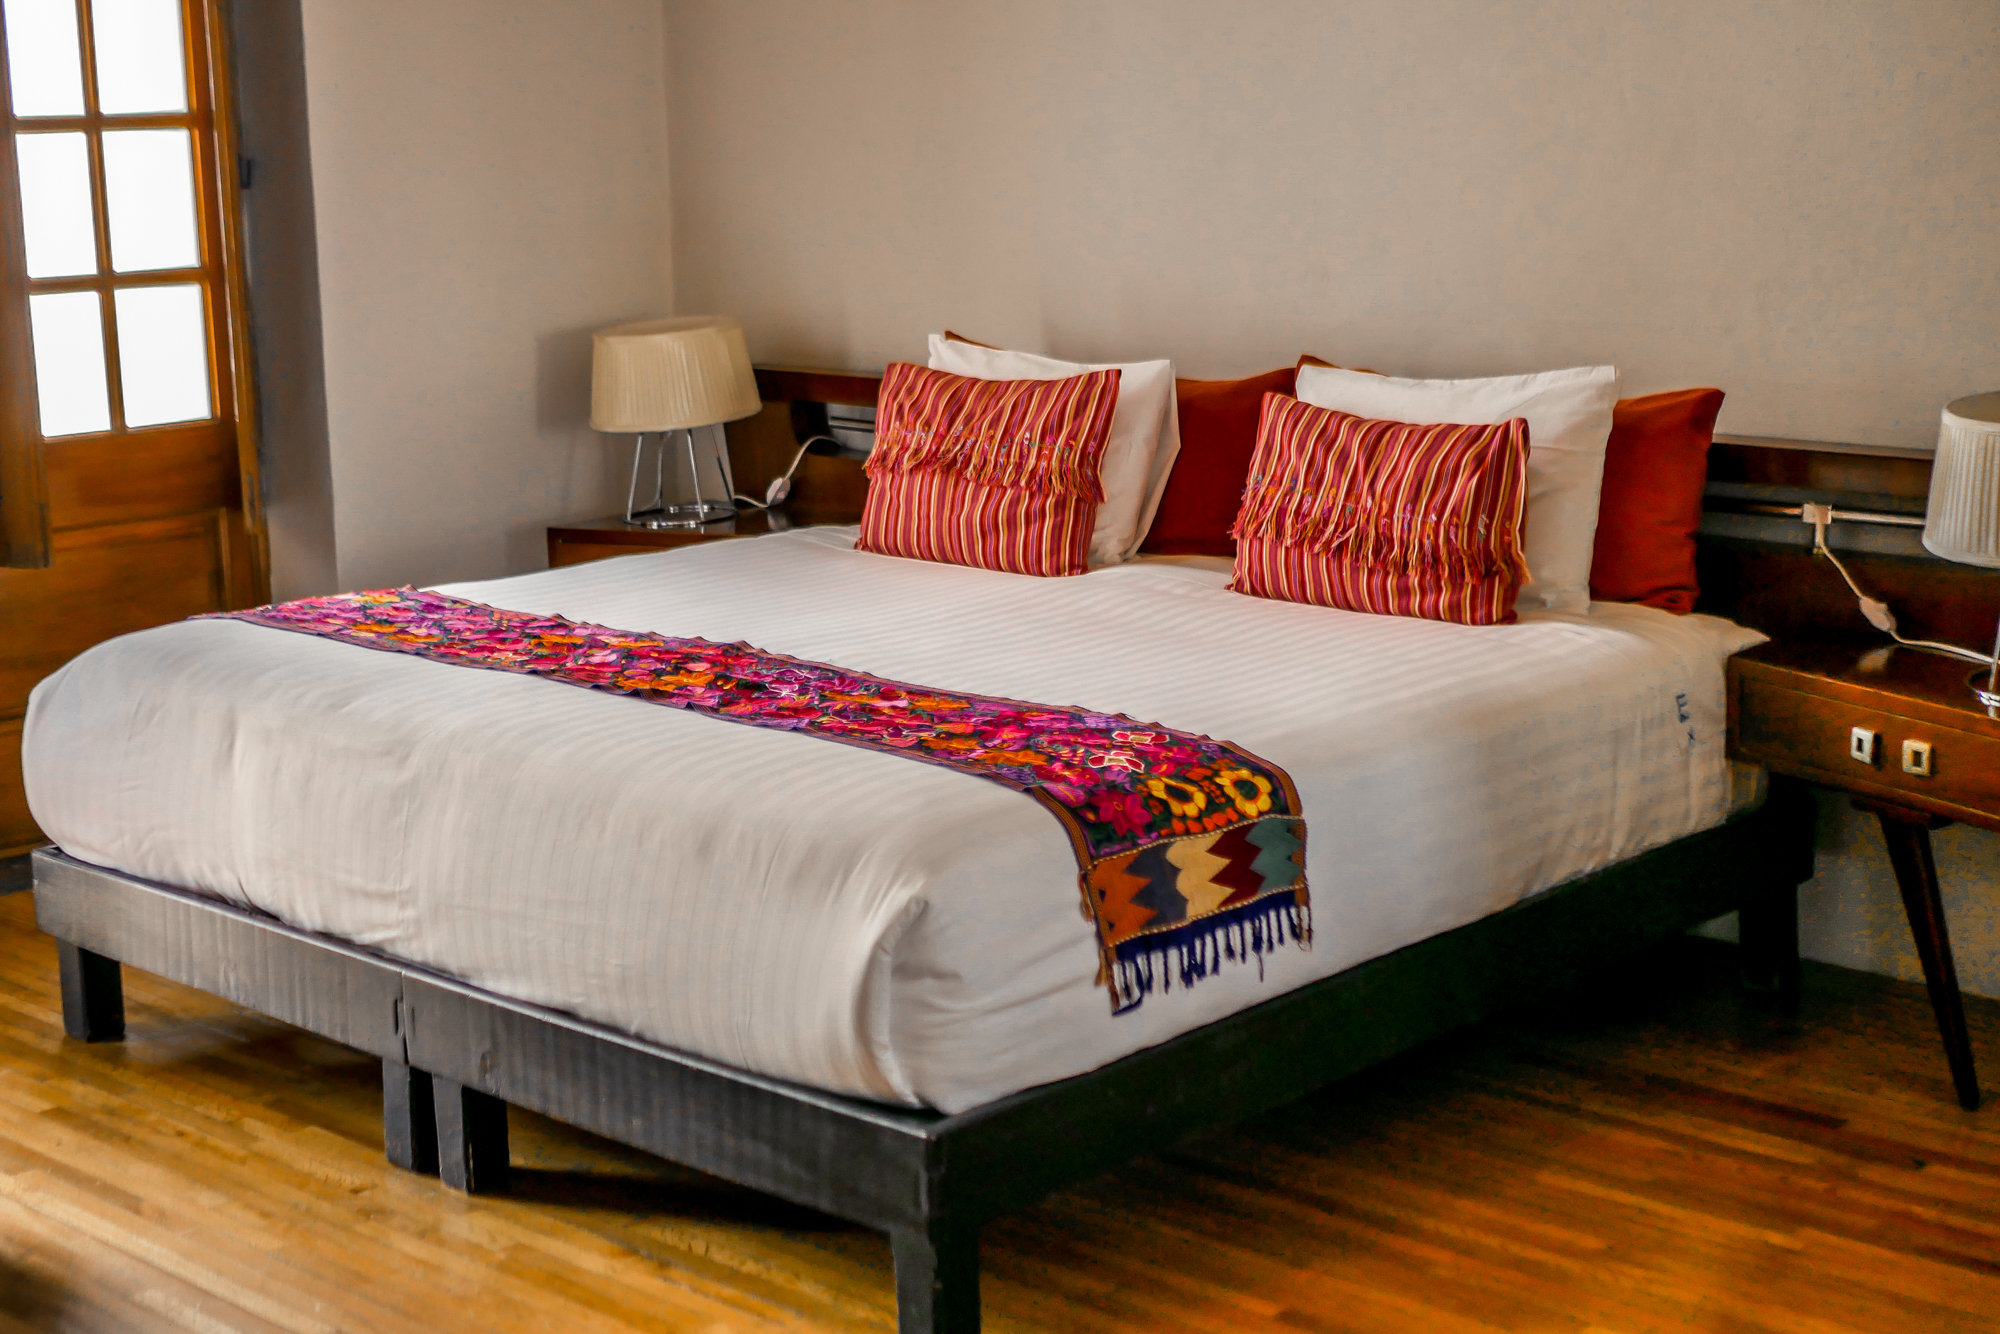 Chiapas suite bed historic hotel in Mexico City